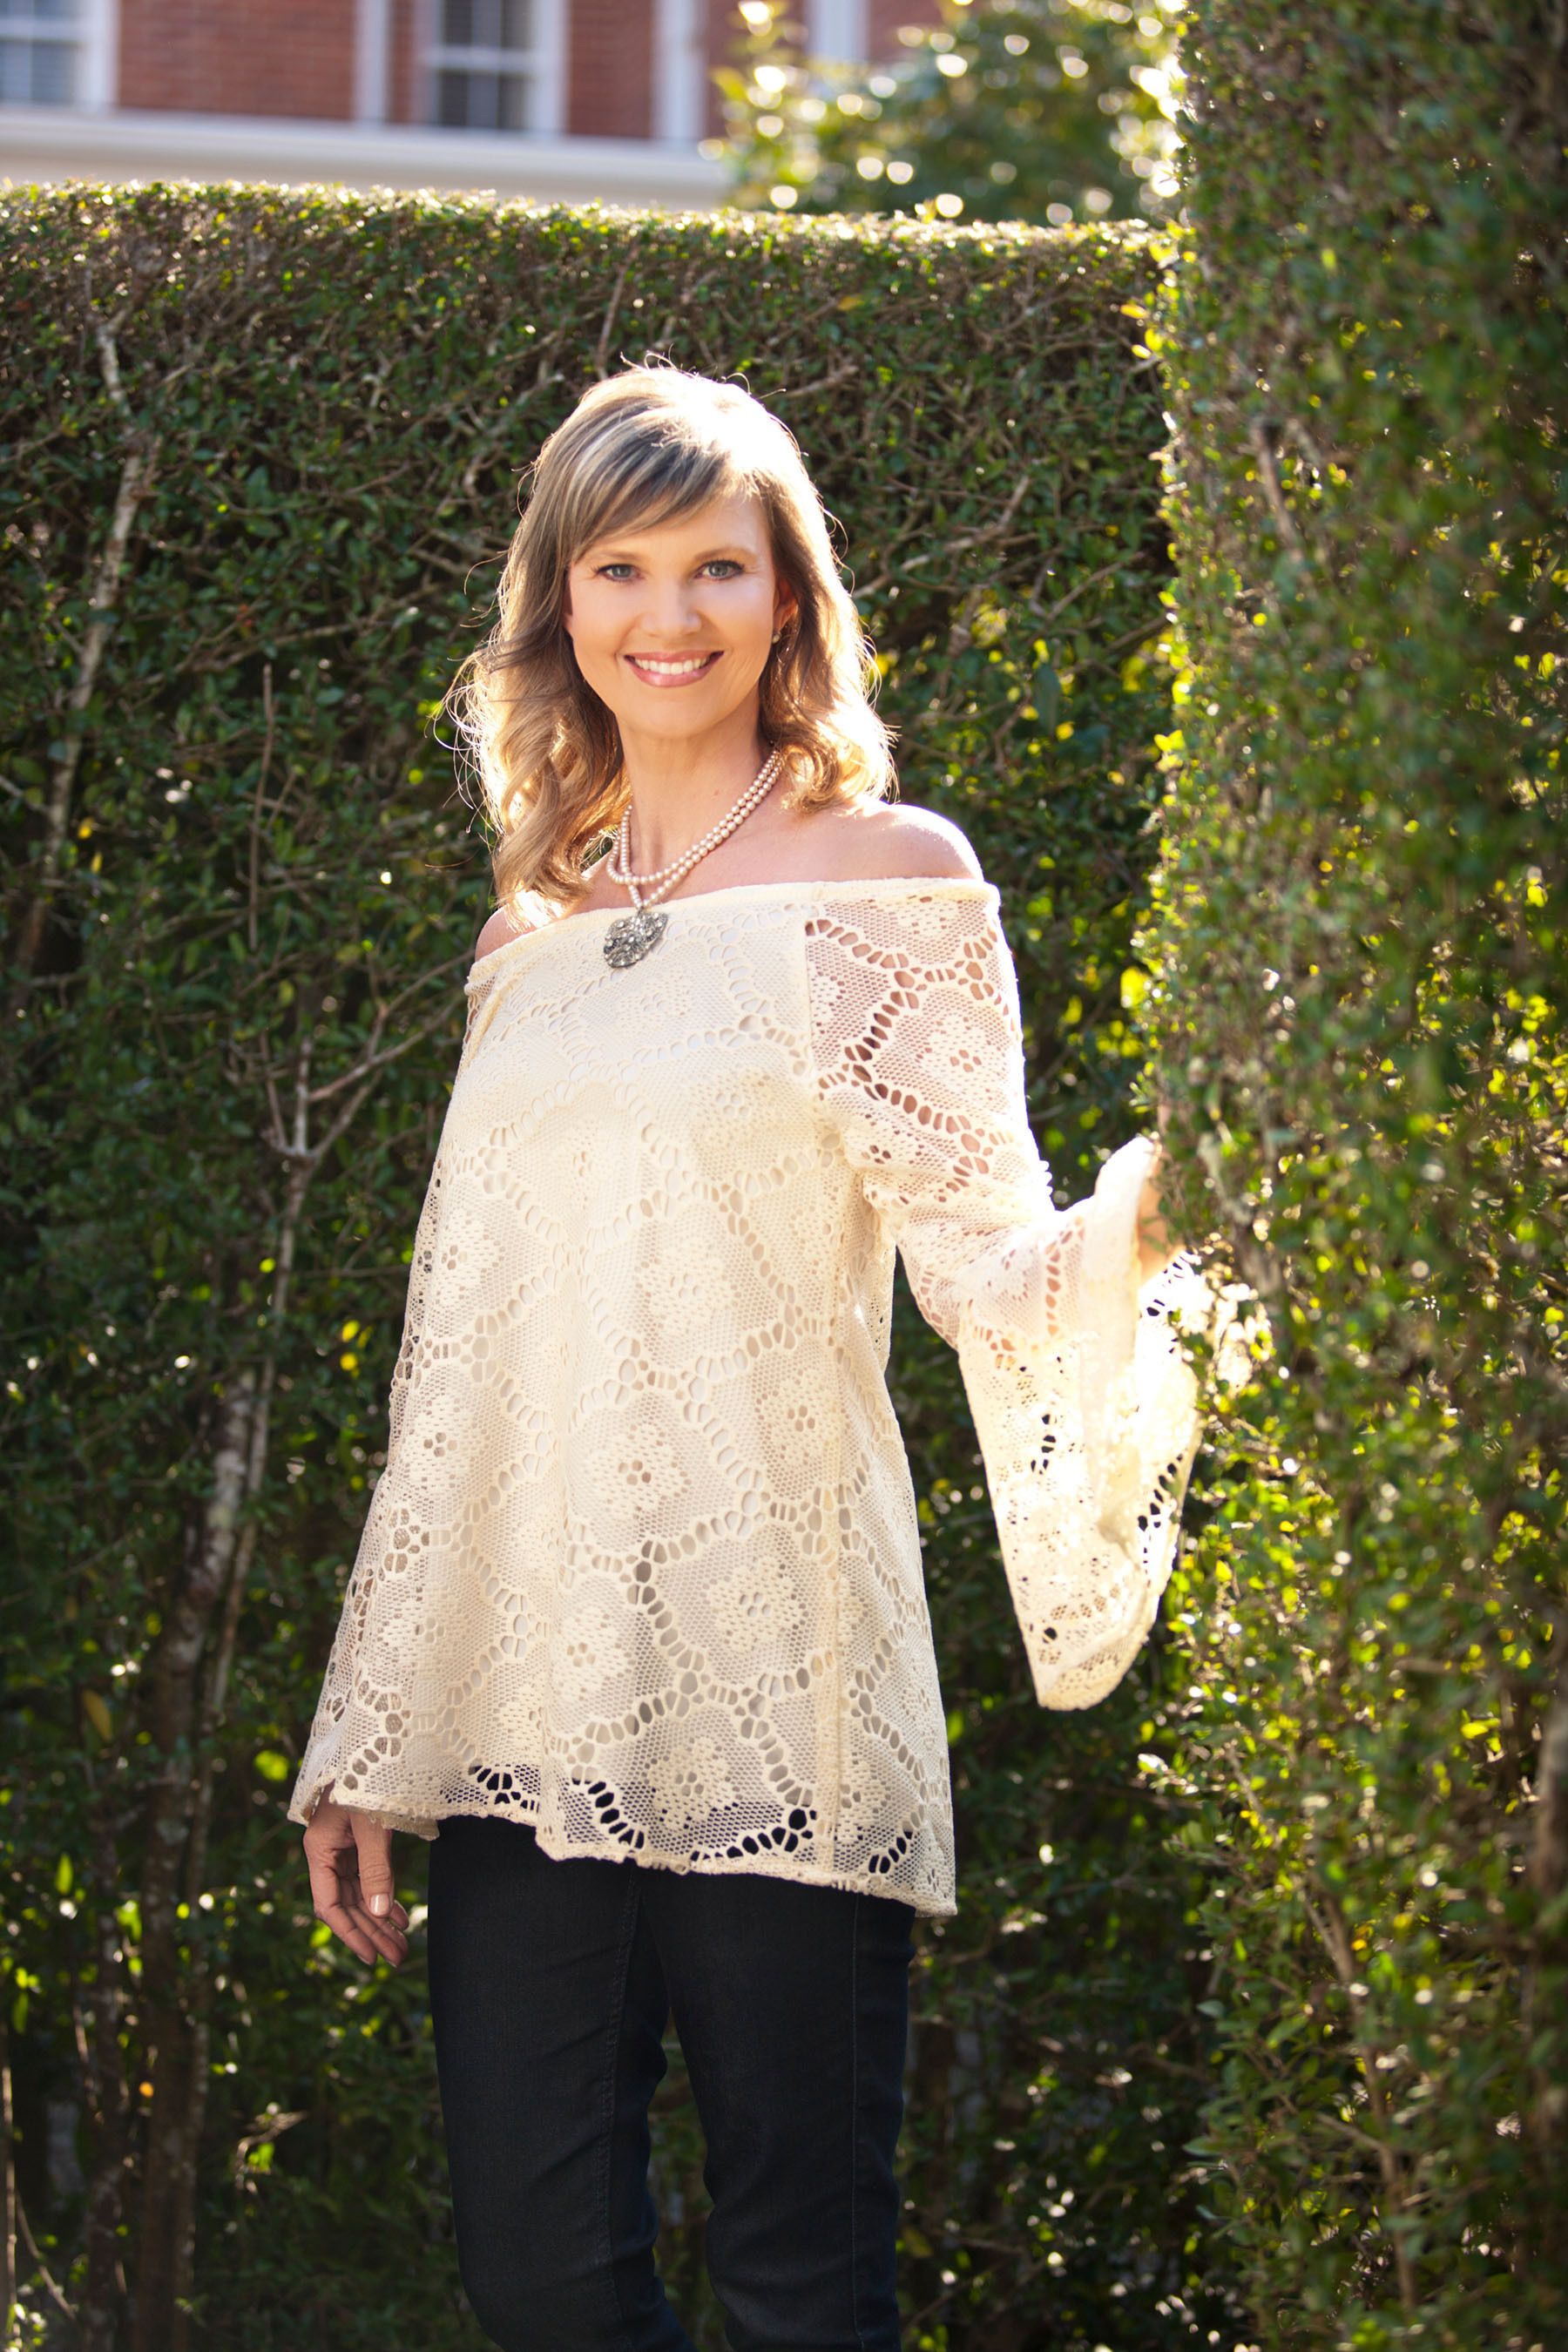 Duck Dynasty's Missy Robertson Launches Clothing Line